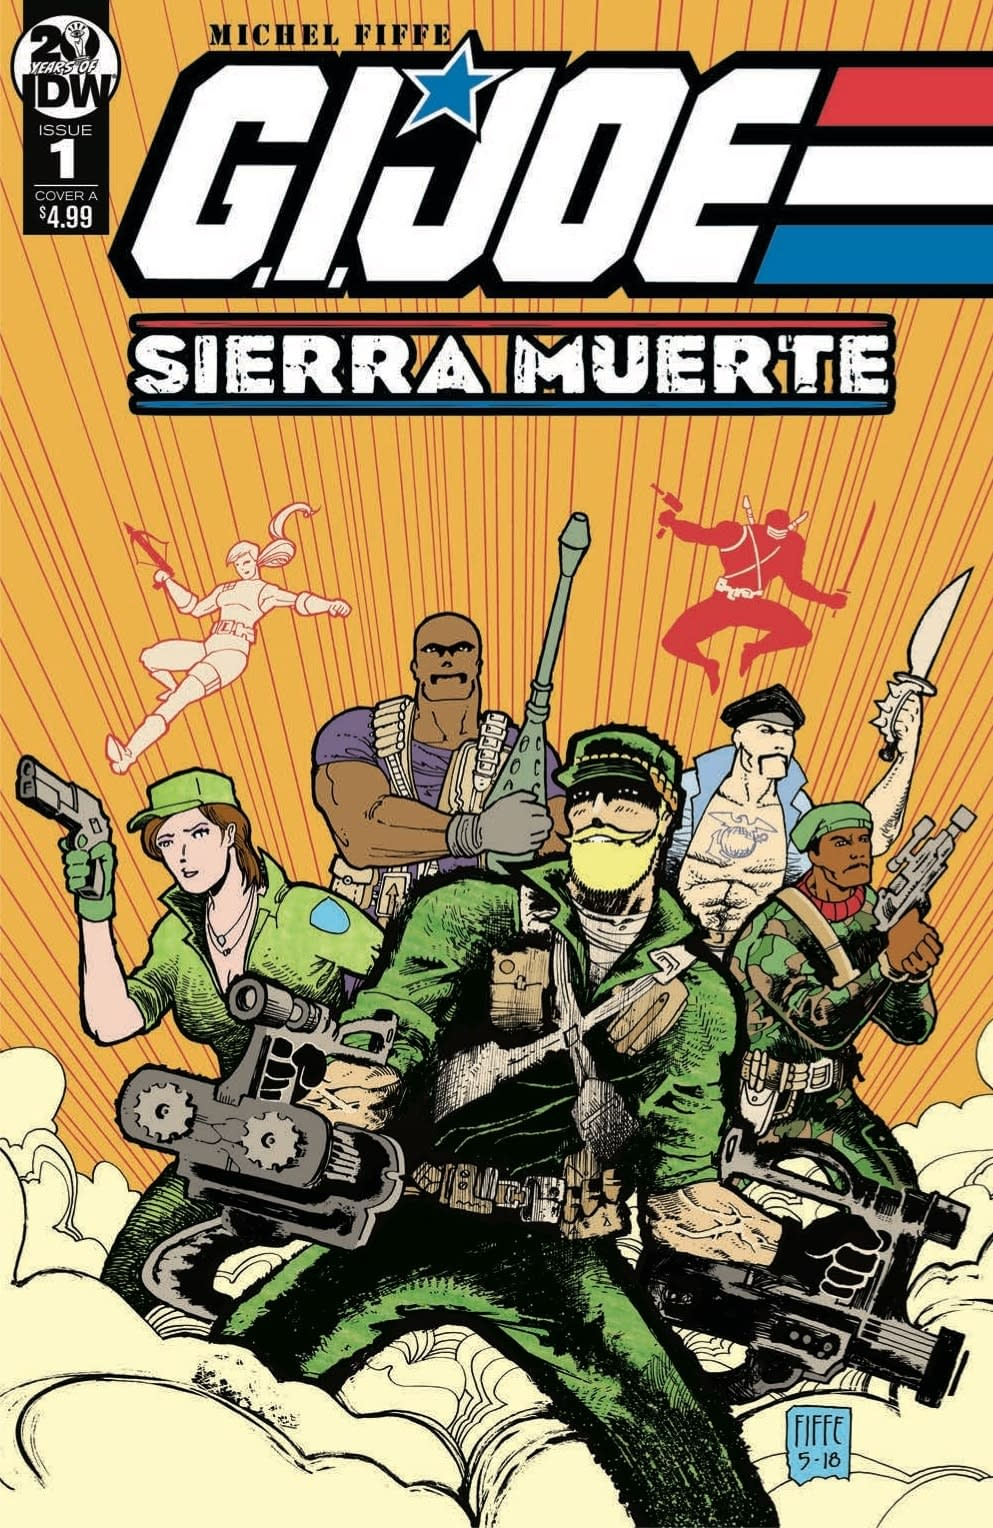 Raiding Dr. Venom's Stash in Tomorrow's GI Joe Sierra Muerte #1